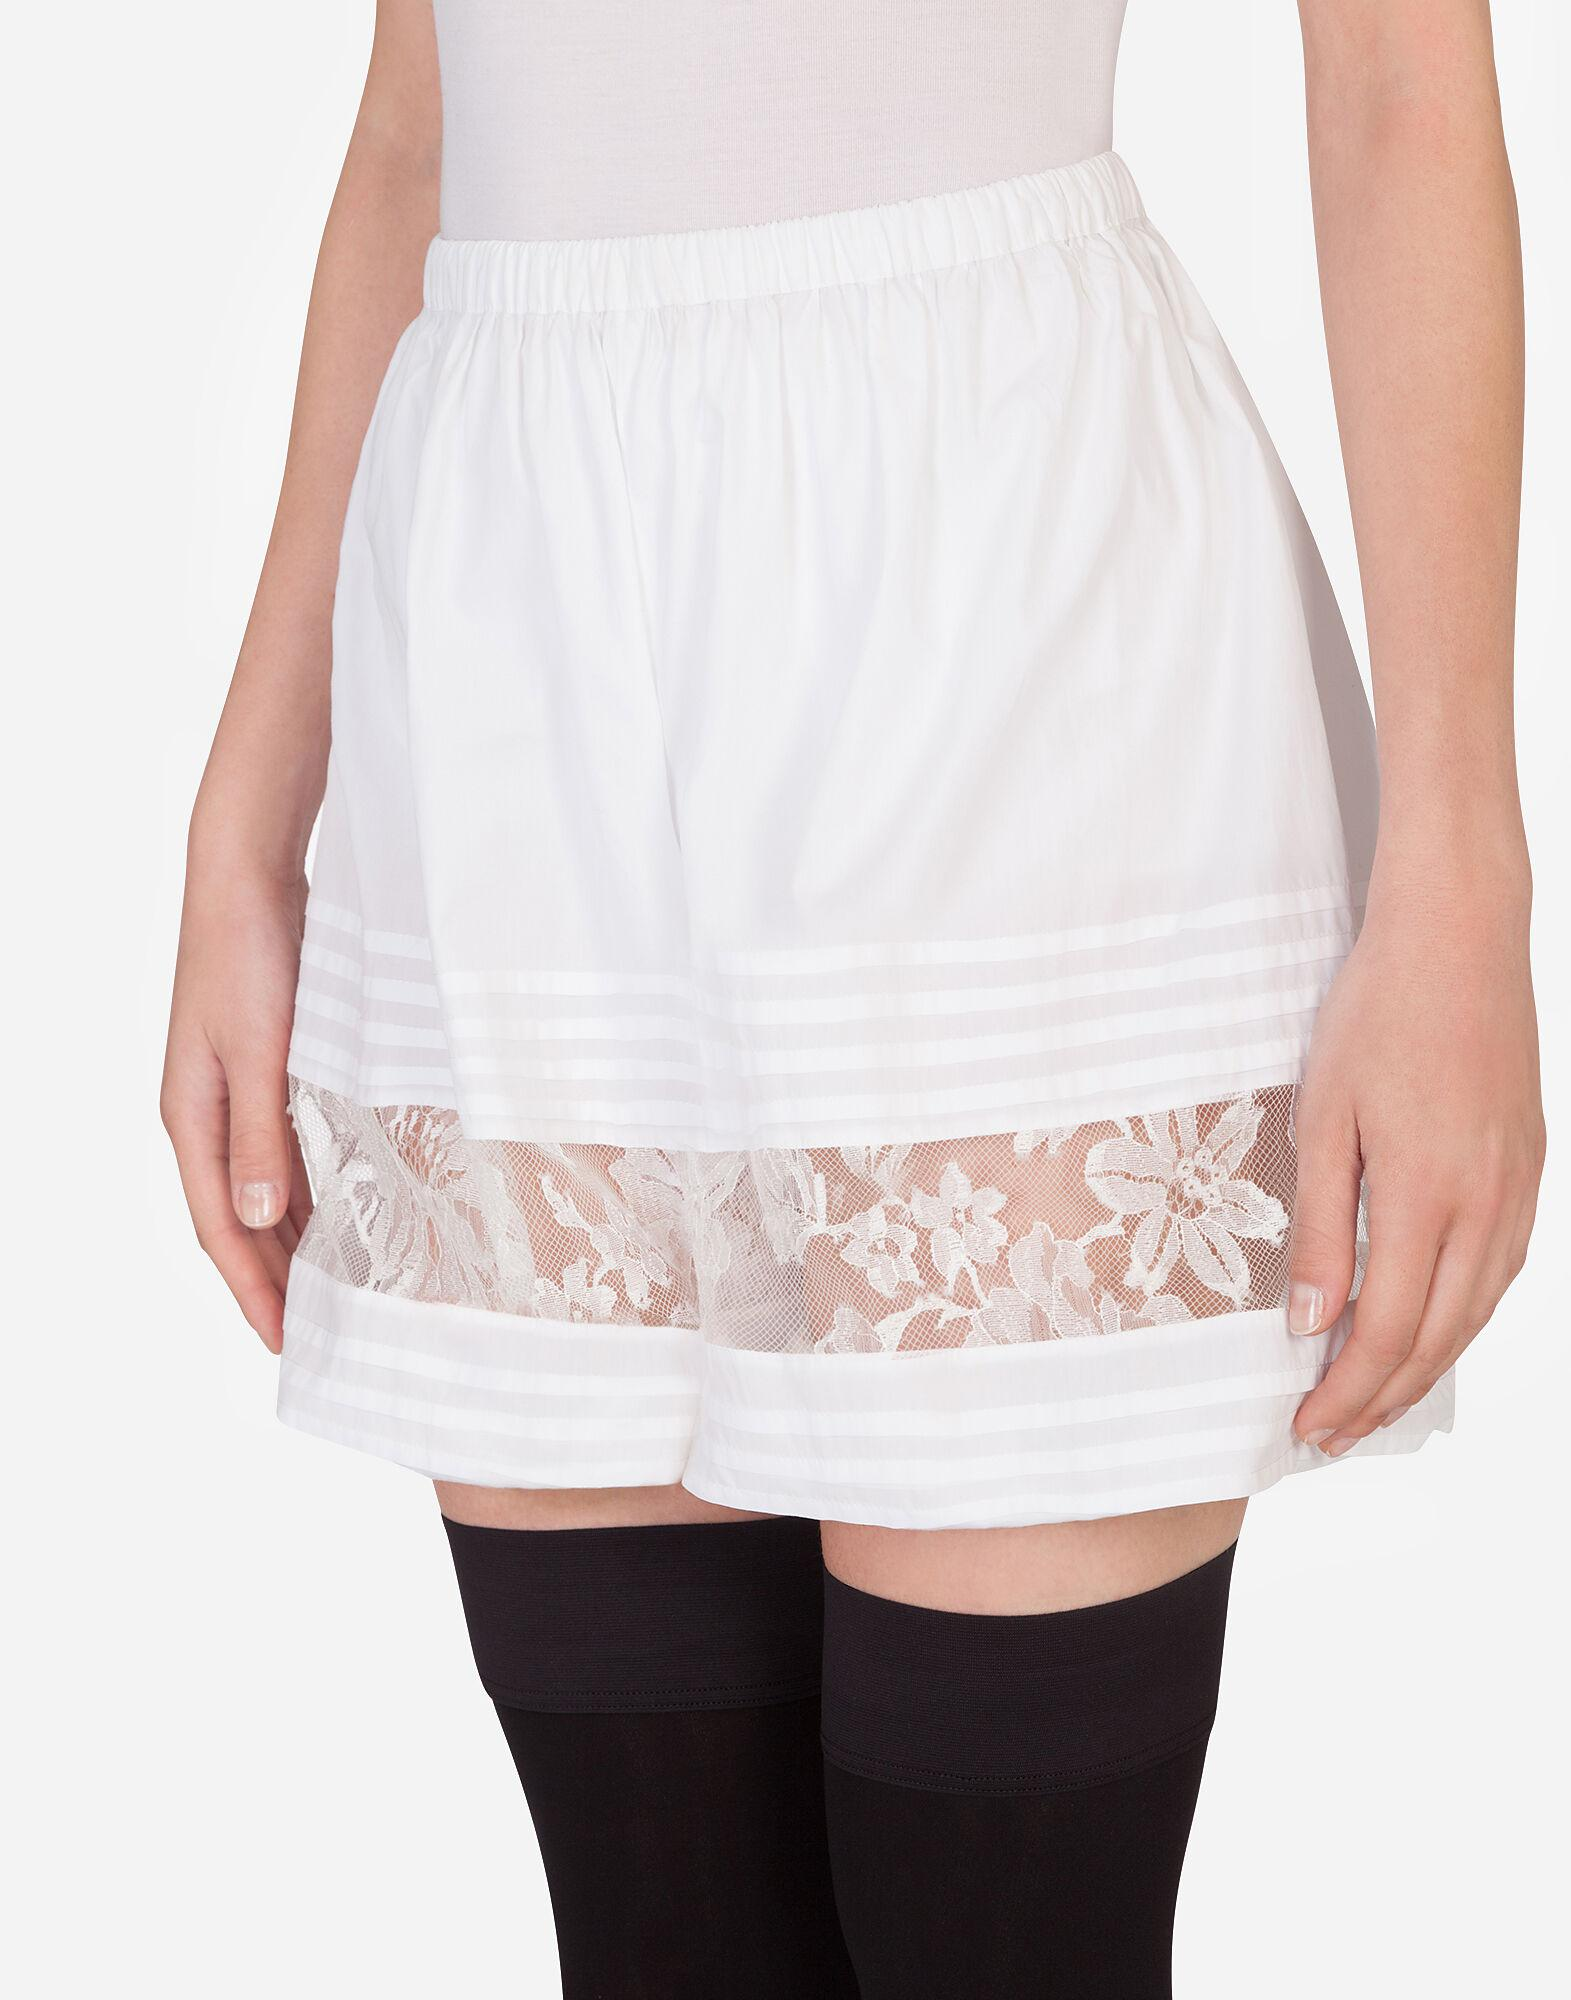 Silk shorts with lace details 2